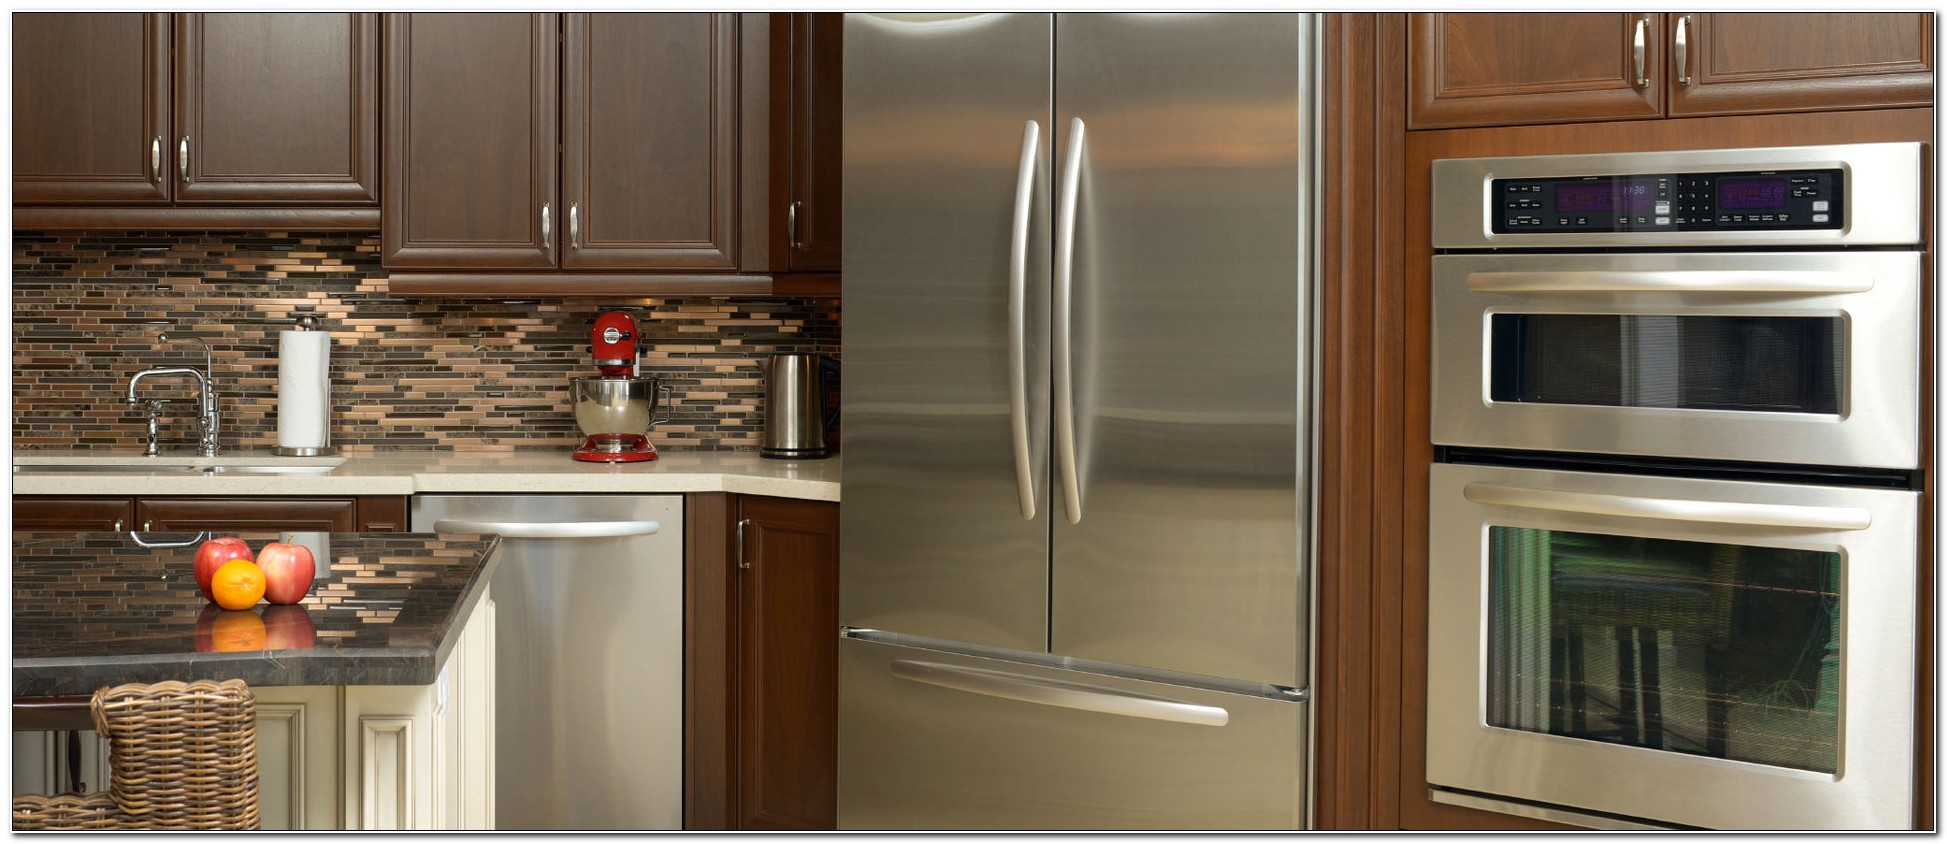 Best Counter Depth Refrigerator Consumer Reports